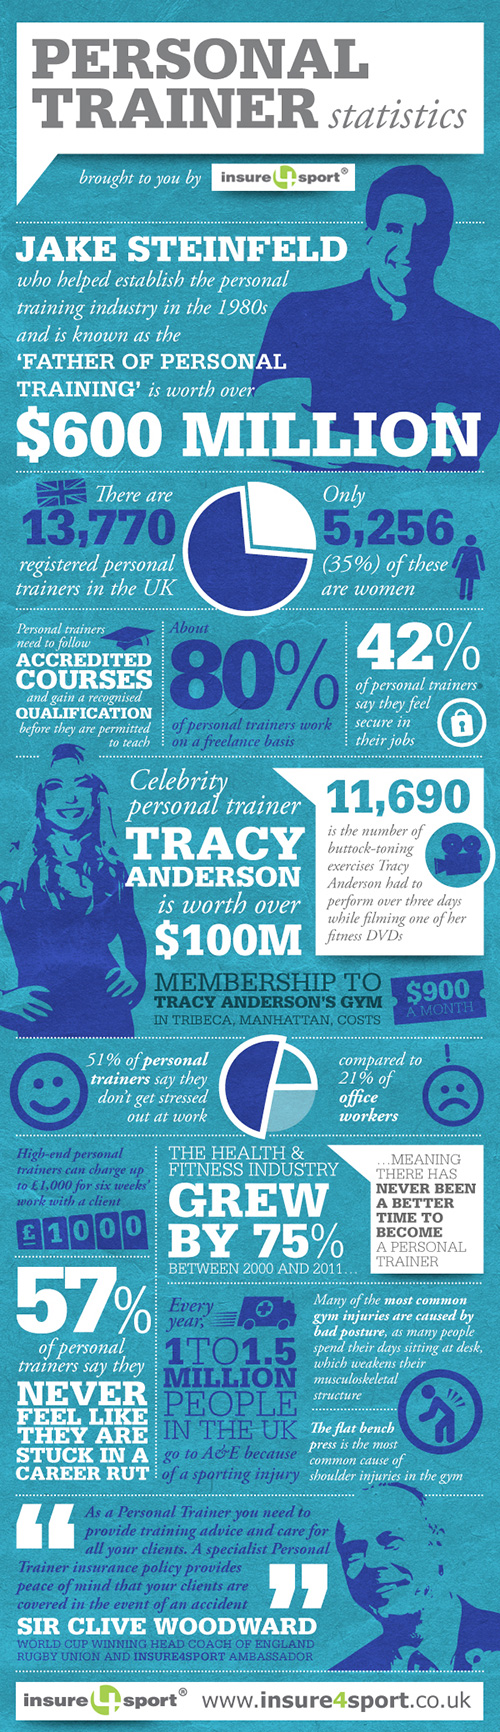 insure4sport personal trainer infographic